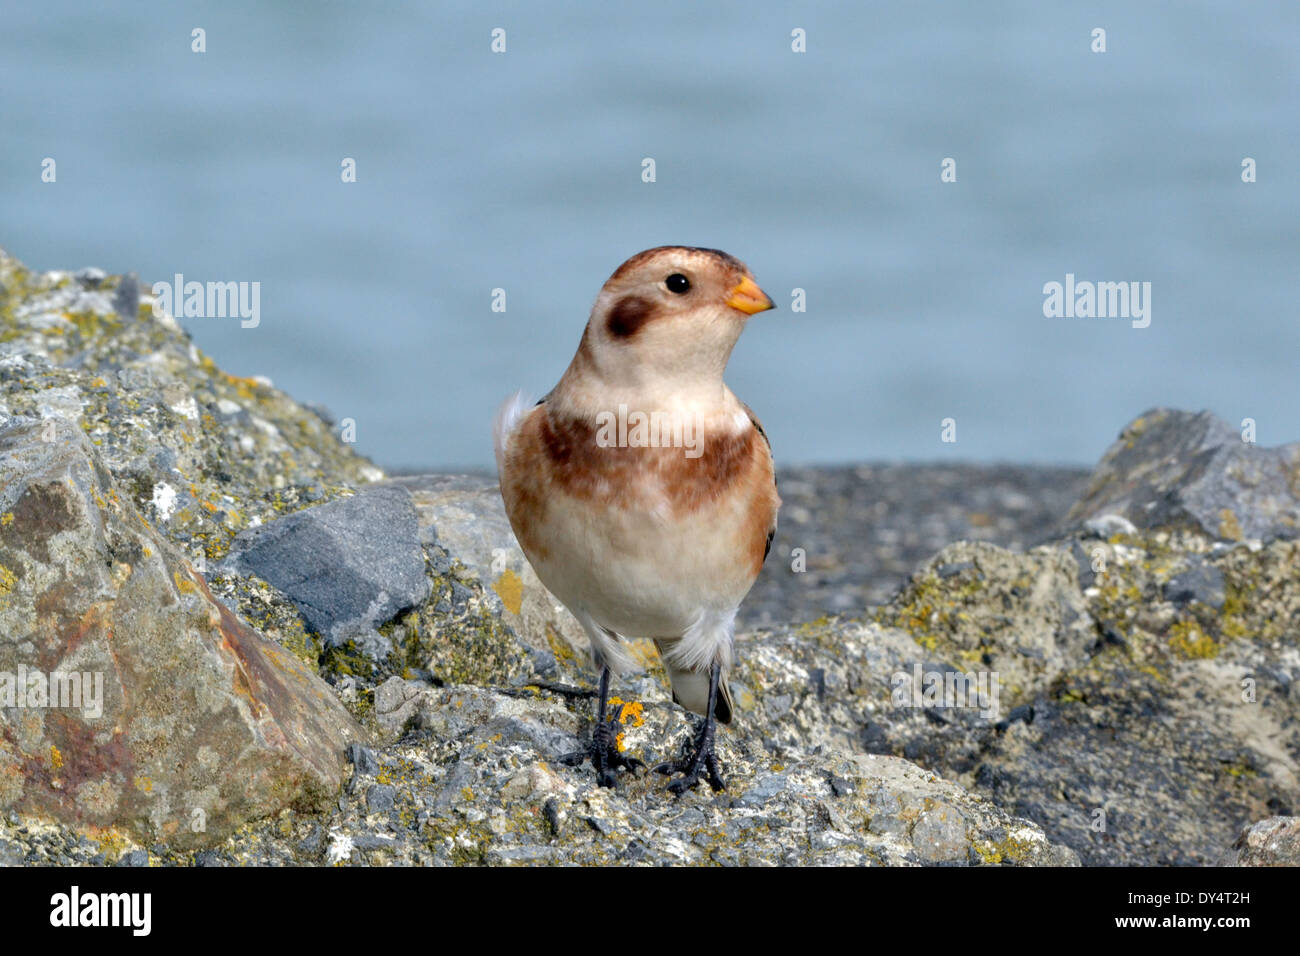 Snow Bunting bird portrait on rocks against blue sky in Cornwall - Stock Image